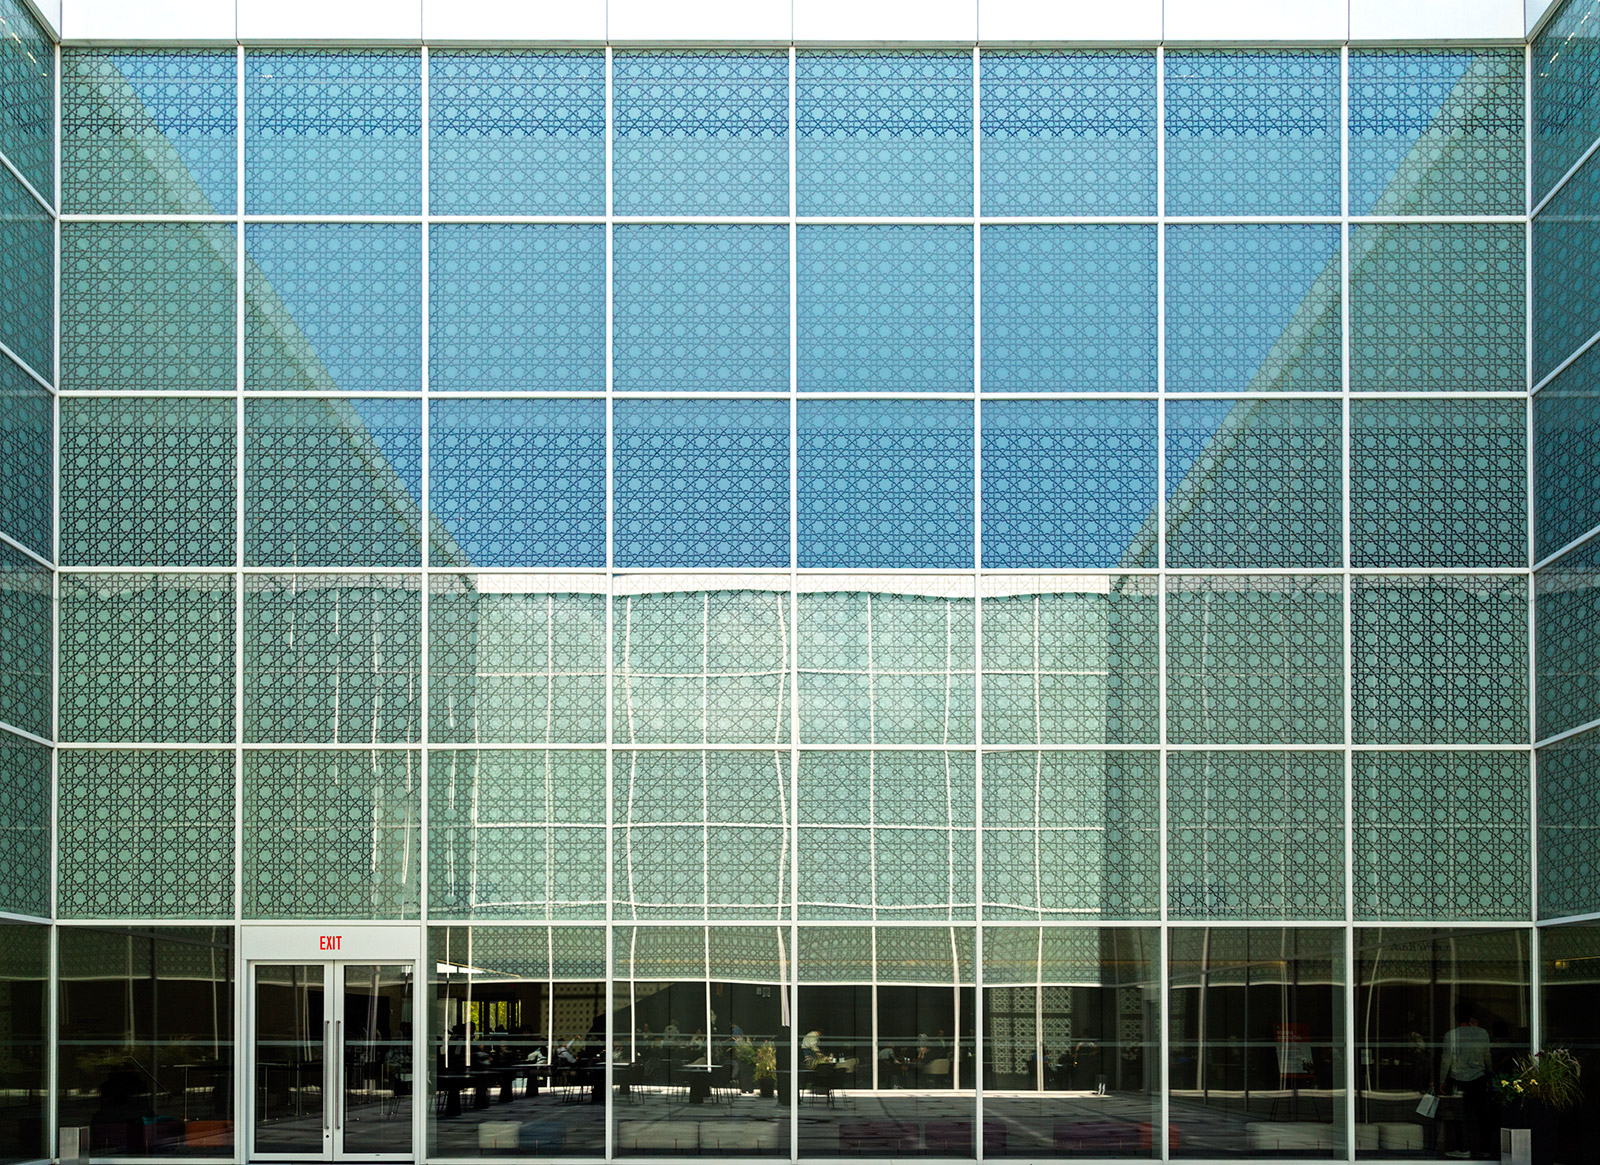 20141122. Reflections in the Aga Khan Museum's courtyard.